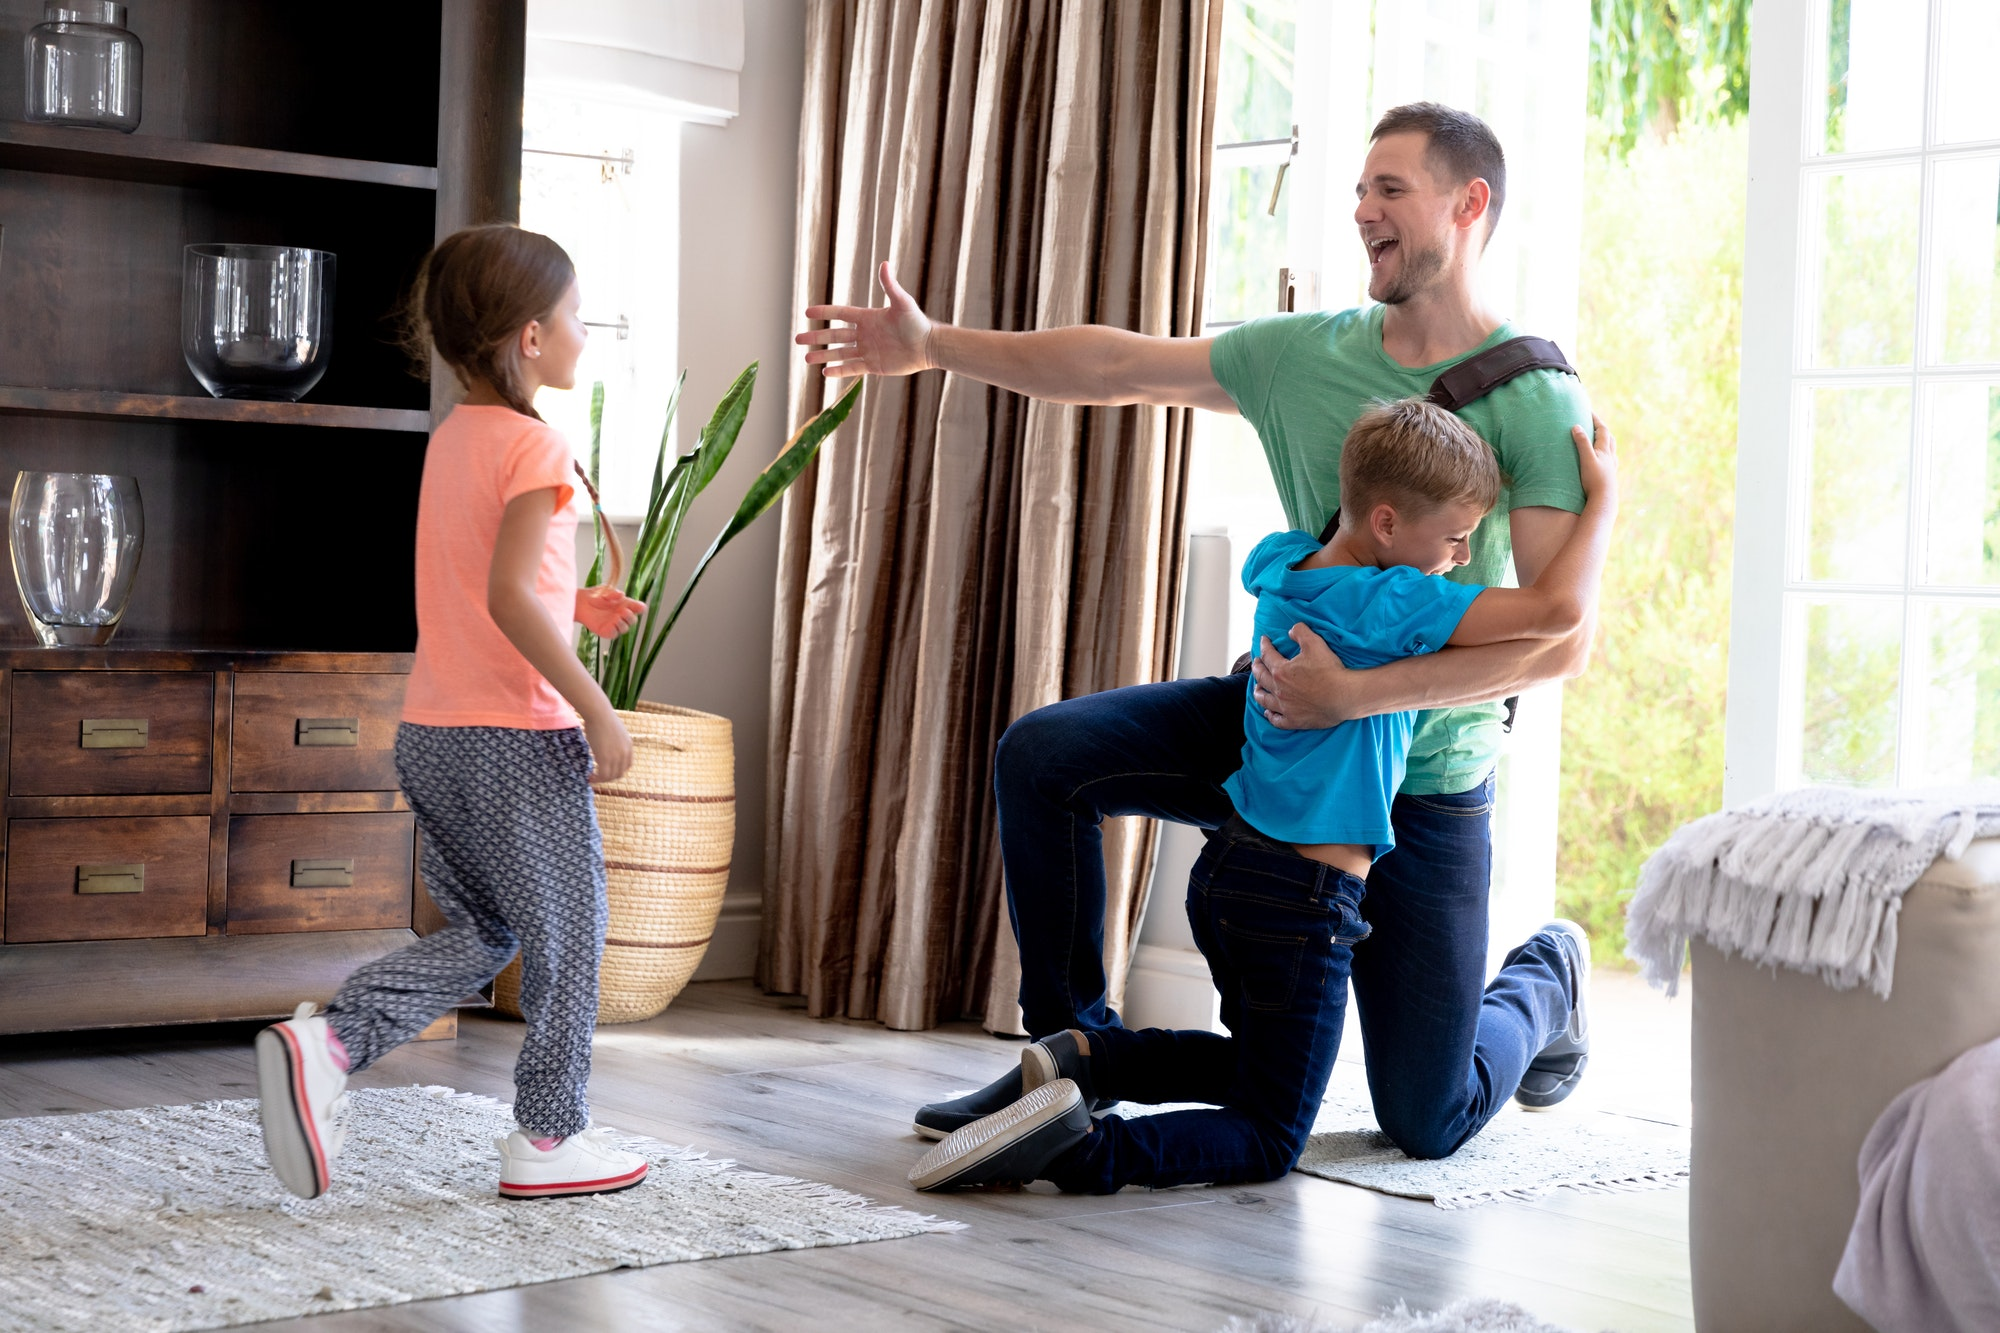 Caucasian girl and boy welcoming their father in their house.